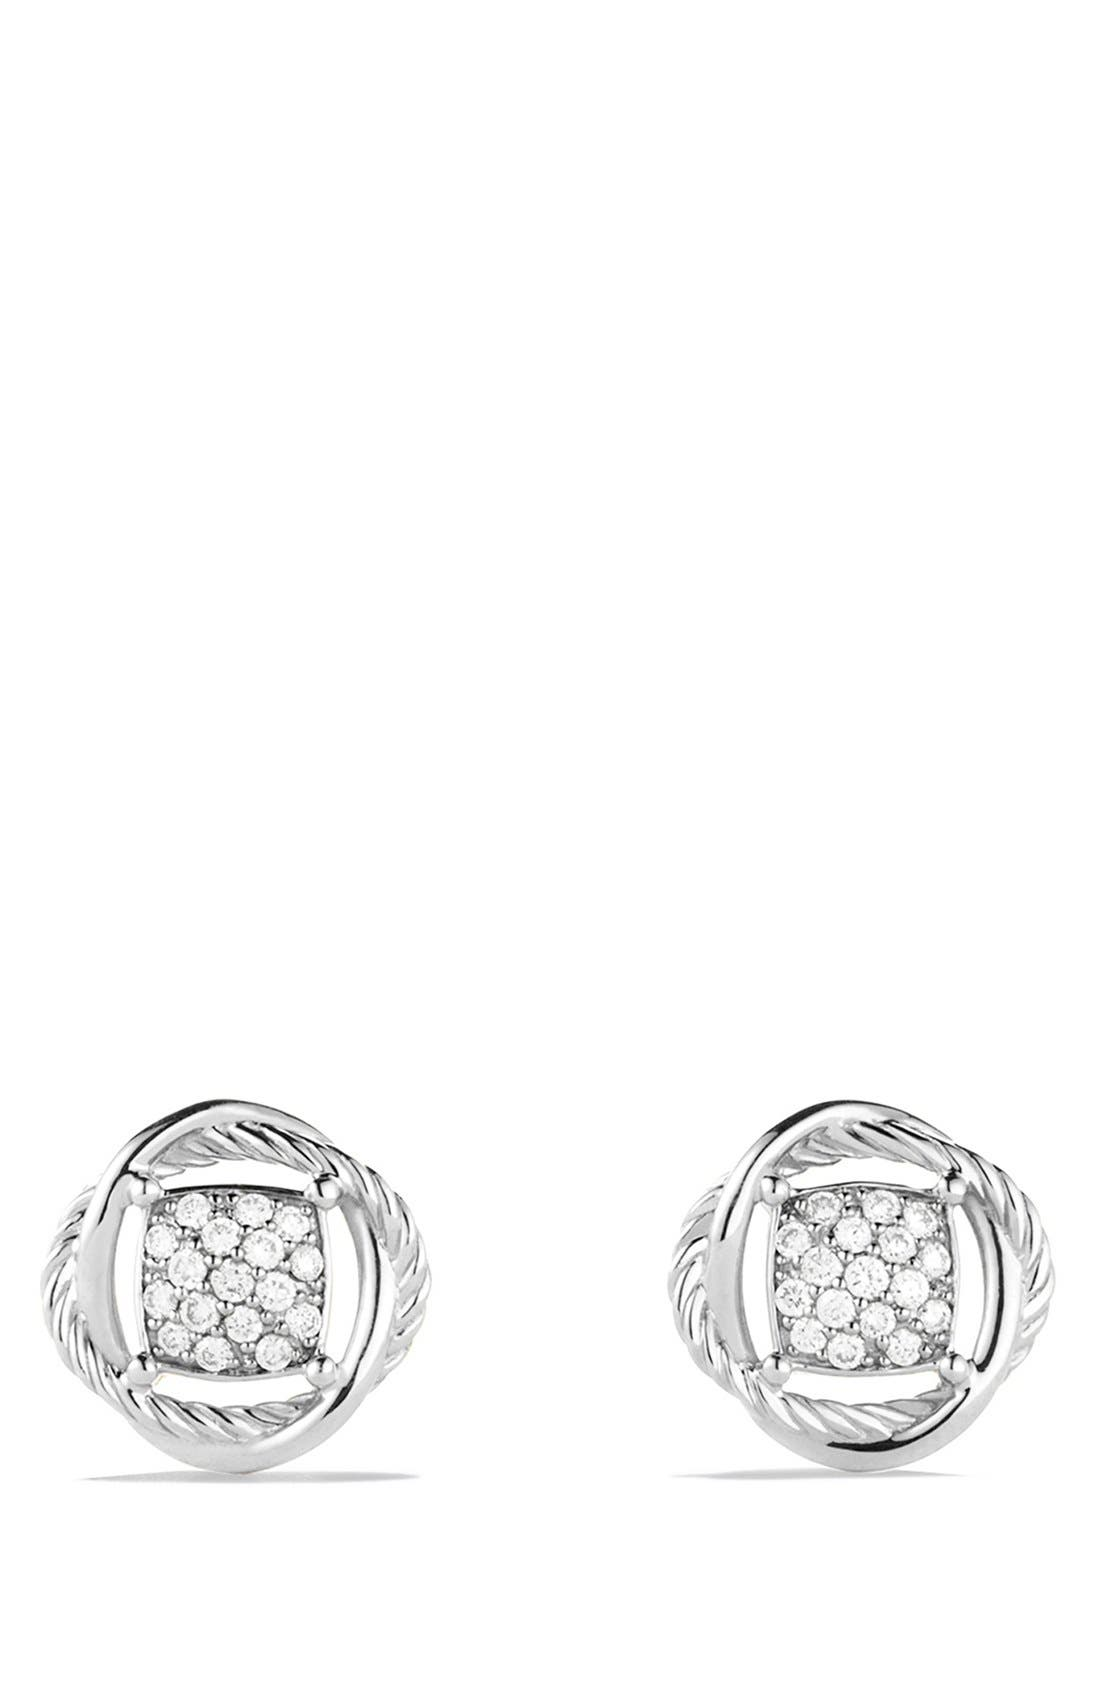 Alternate Image 2  - David Yurman 'Infinity' Pavé Diamond Stud Earrings